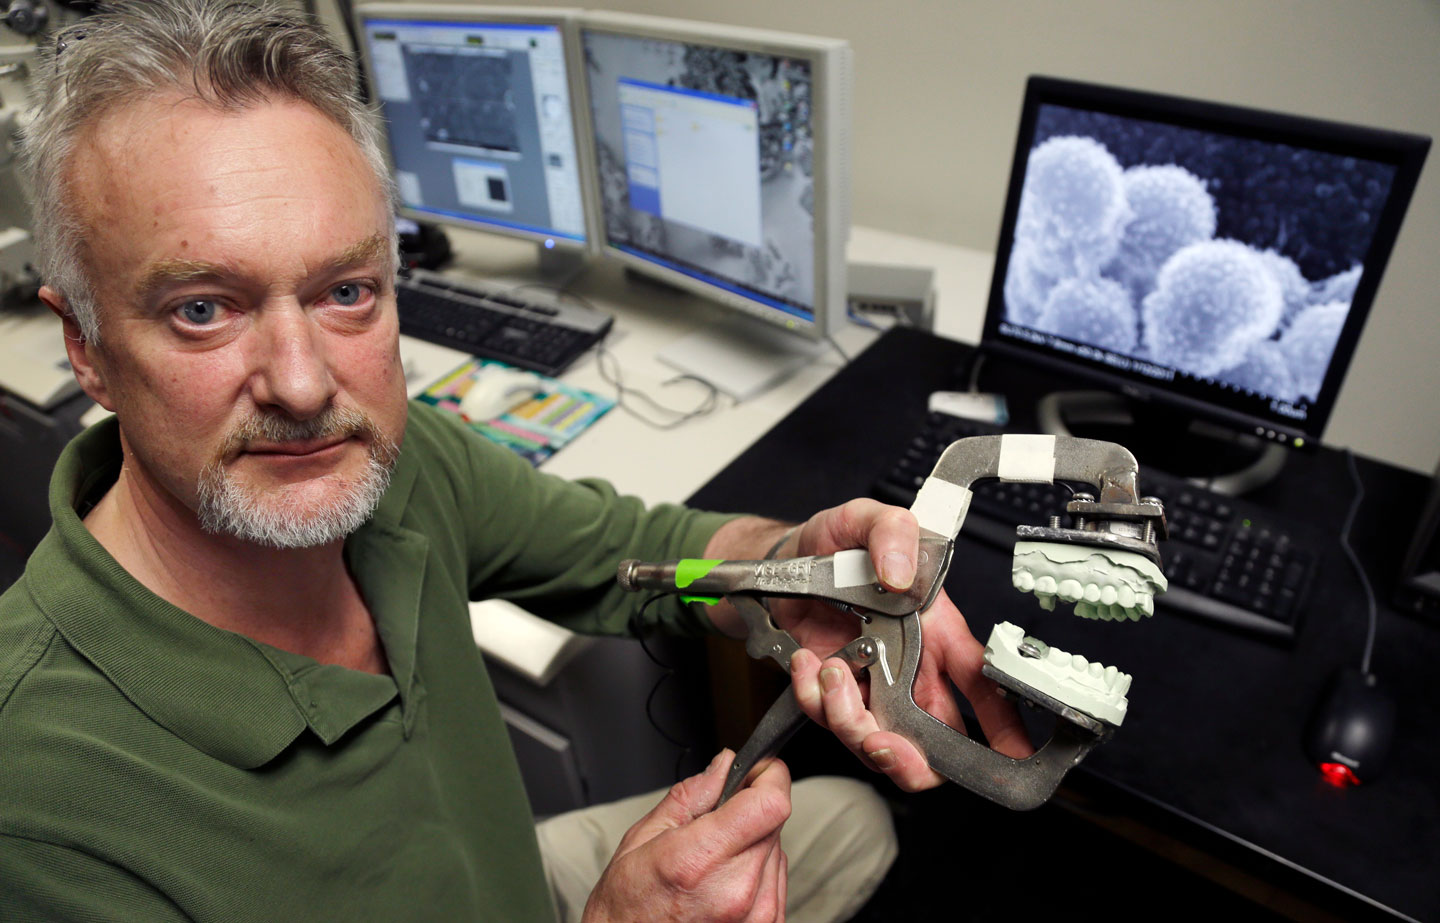 In this April 17, 2013 photo, Peter Bush, Research Scientist at the University at Buffalo, poses for a photo with a modified Vise-Grip tool attached to a dental mold that is used for test bites in skin at the school in Buffalo, N.Y.  Bite marks, long accepted as criminal evidence, now face doubts about reliability. (AP Photo/David Duprey)